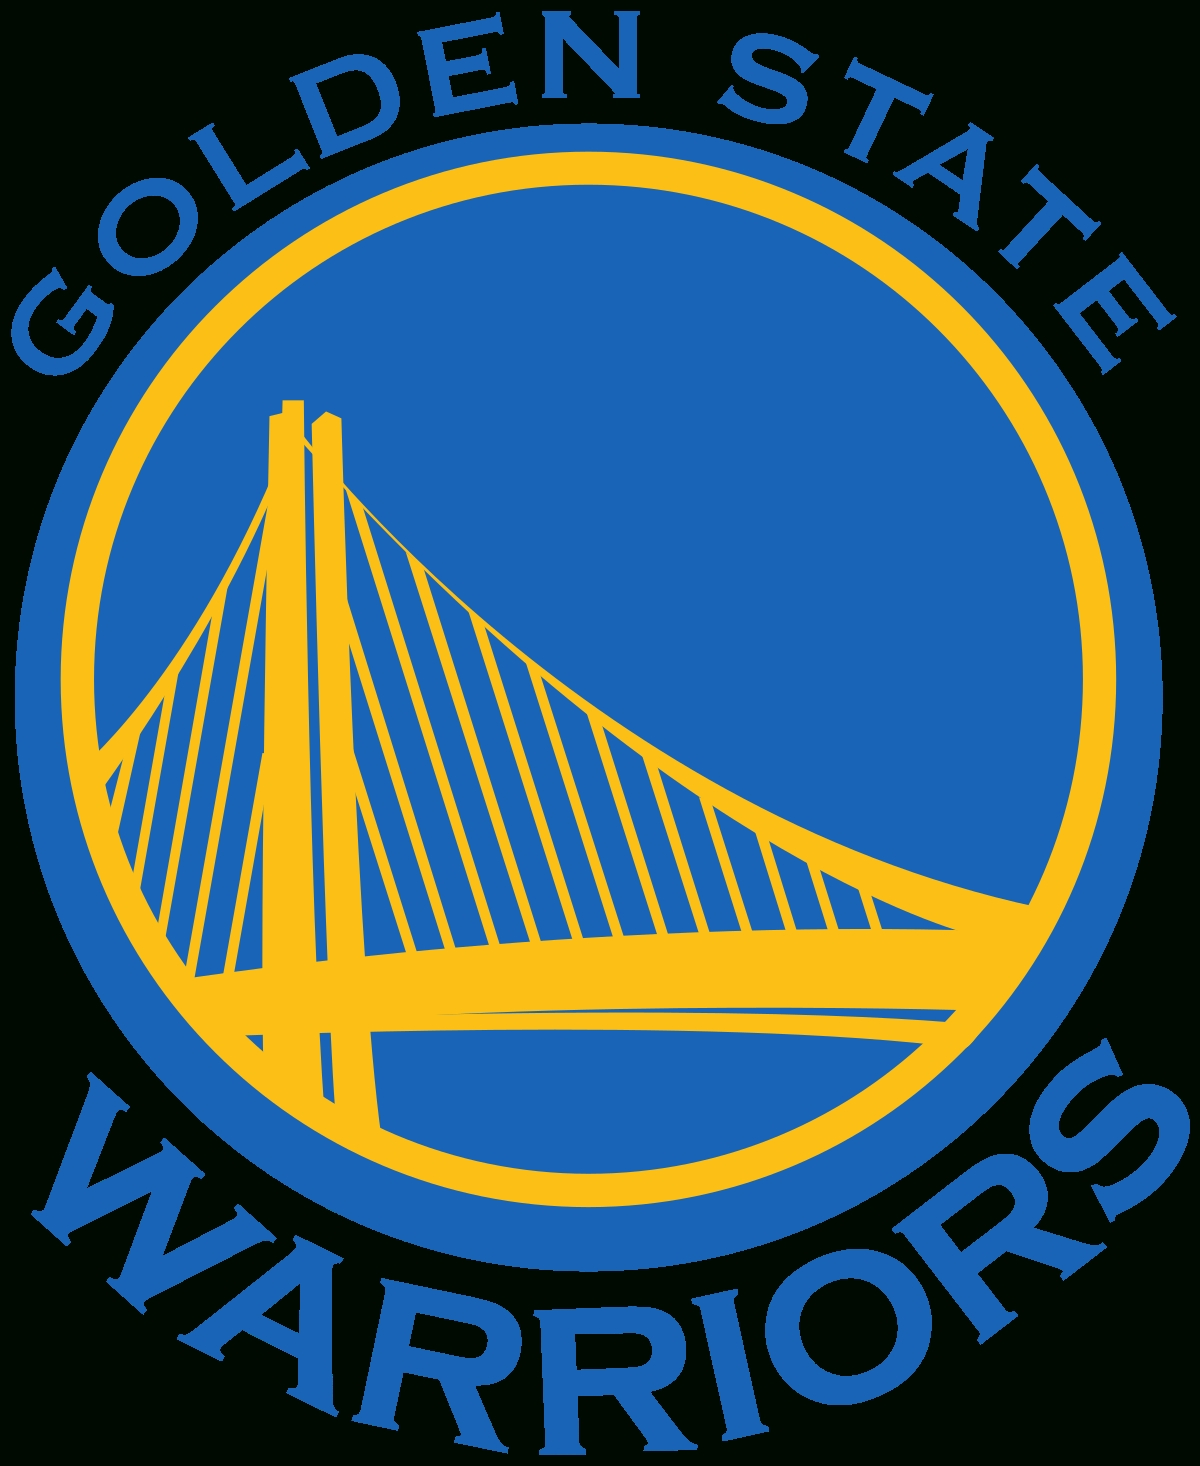 warriors de golden state — wikipédia